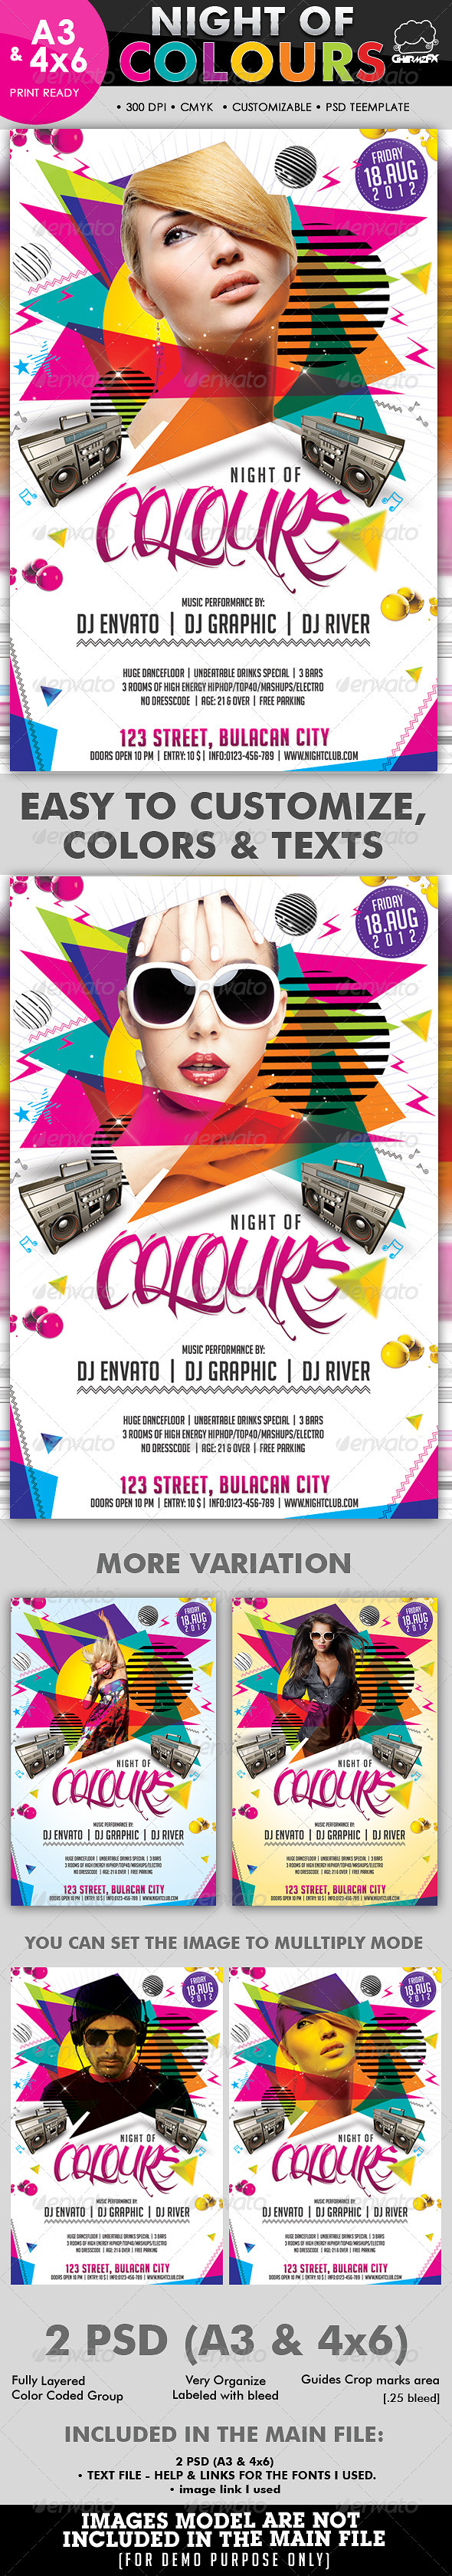 Night Of Colours Flyer Template - Clubs & Parties Events